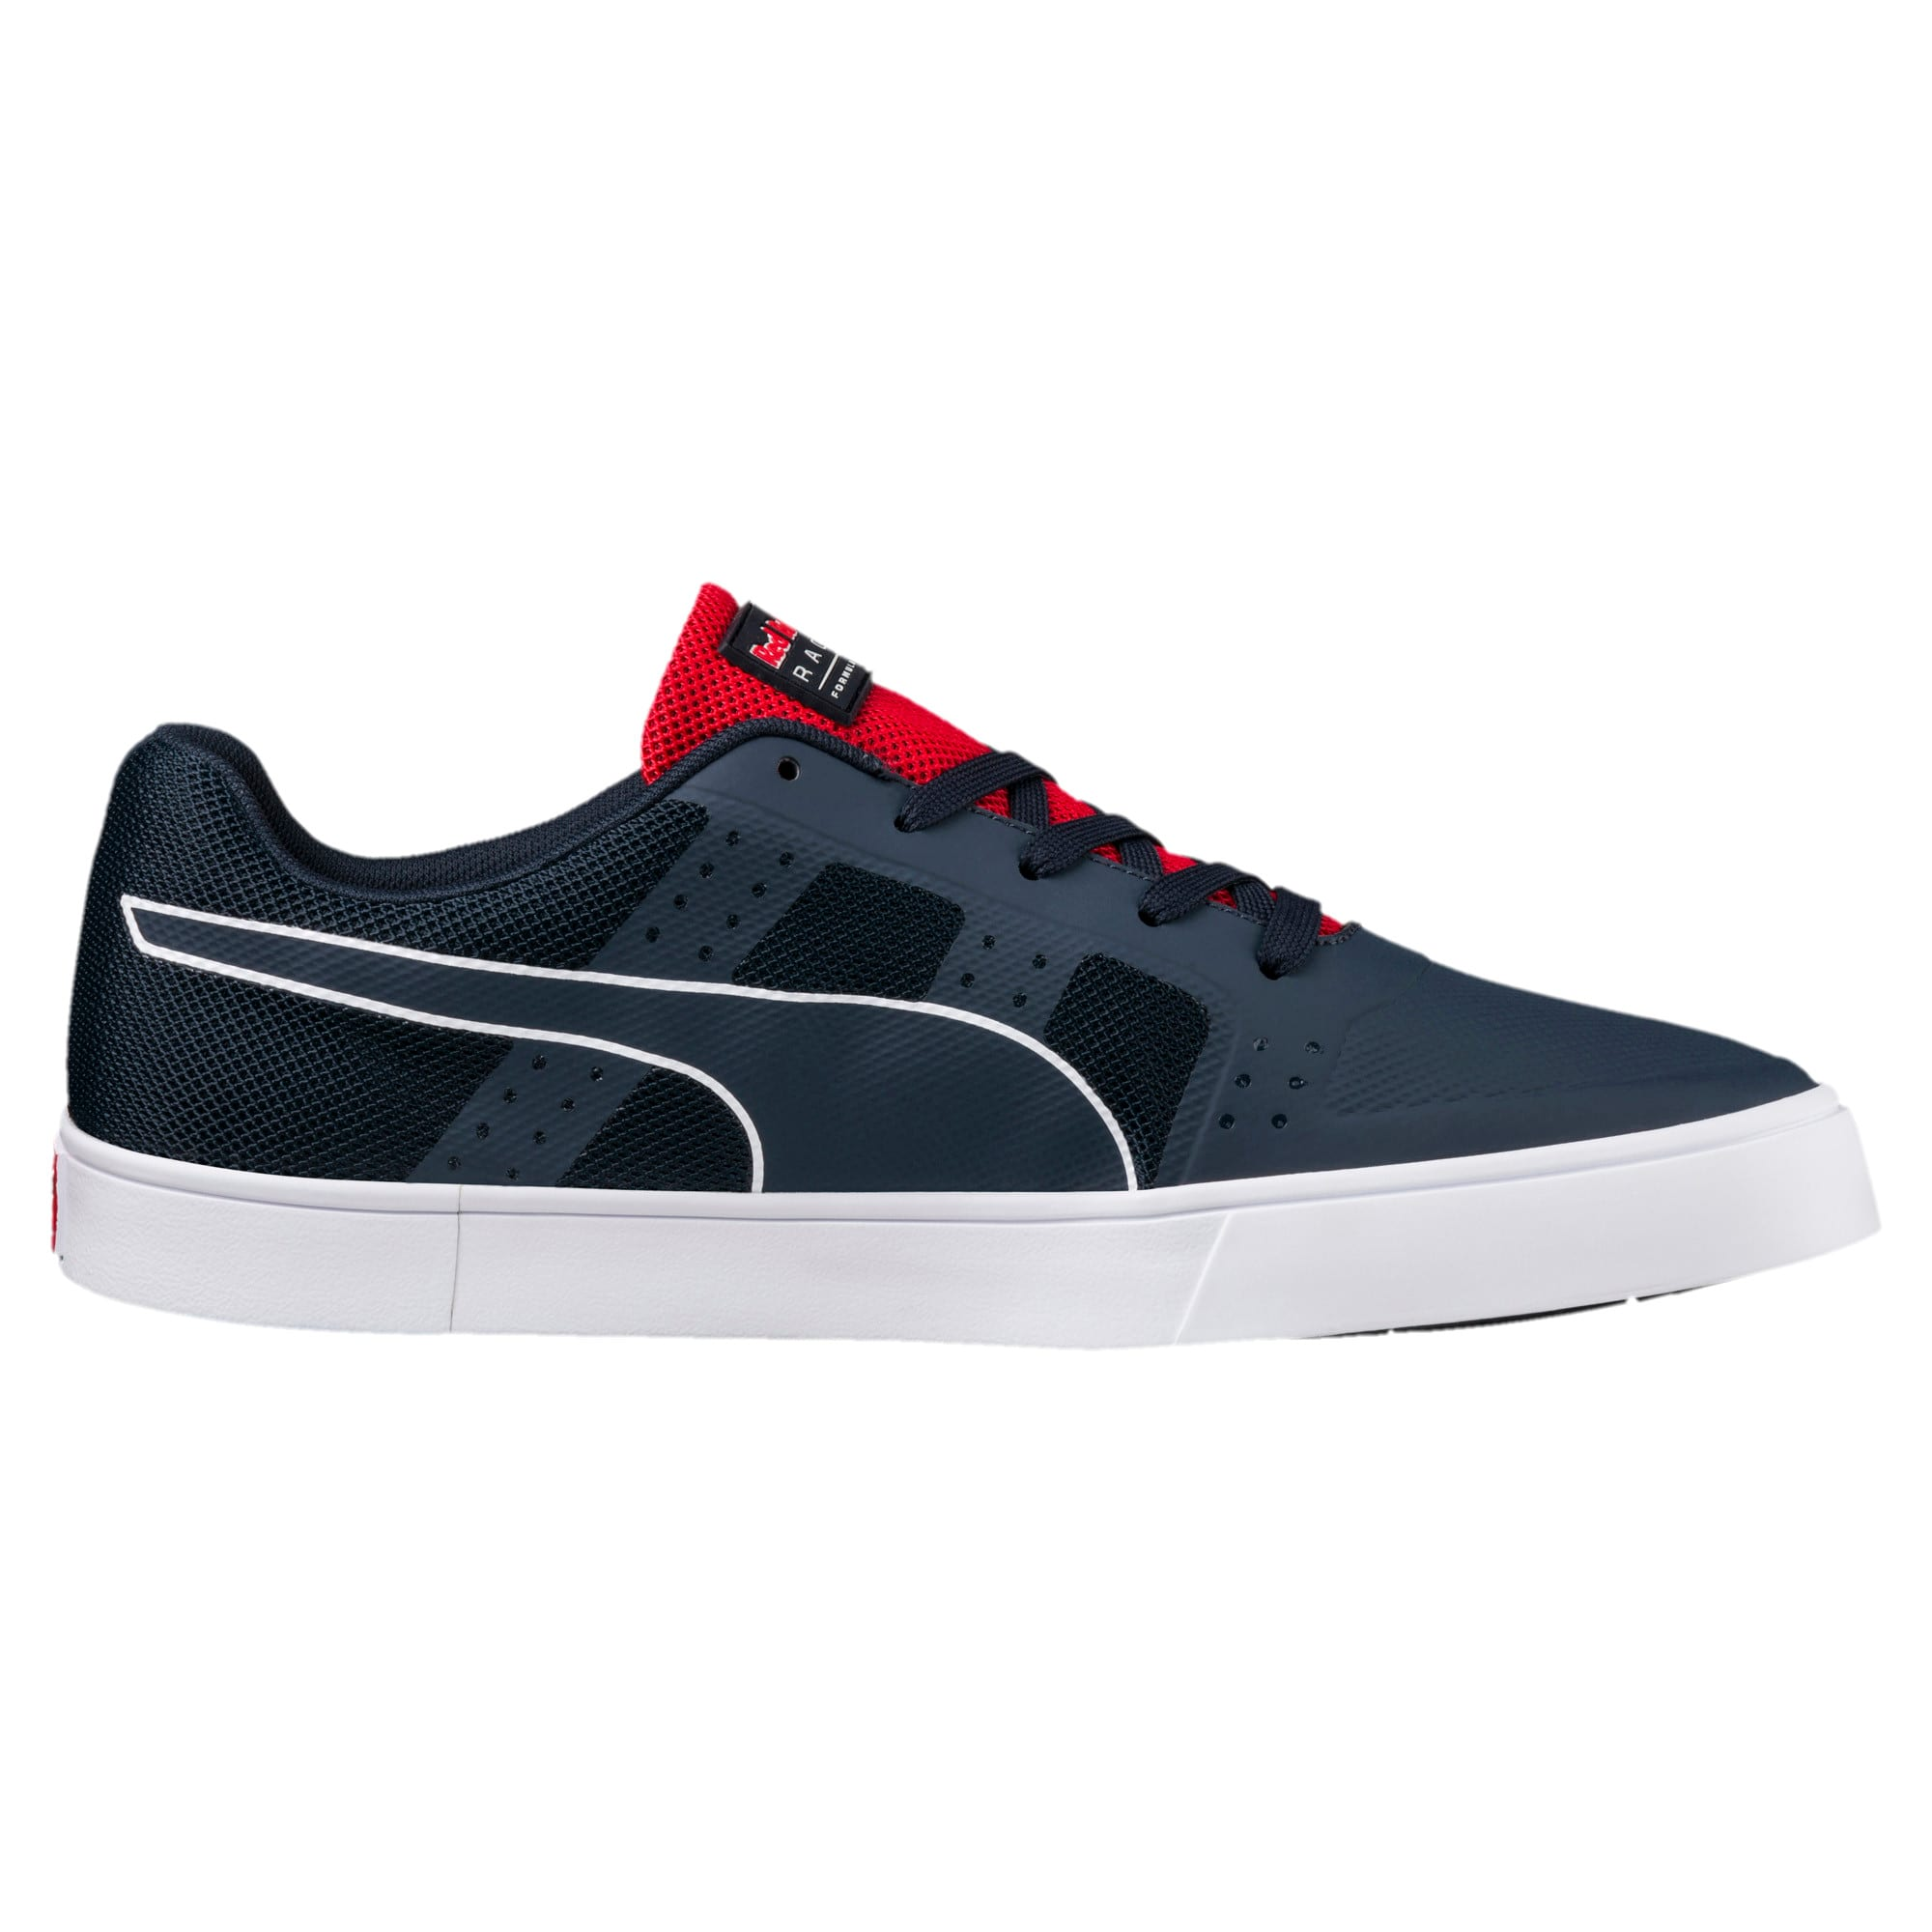 Red Bull Racing Wings Vulc sportschoenen, Ttl Eclipse-wit-Chns Red, large